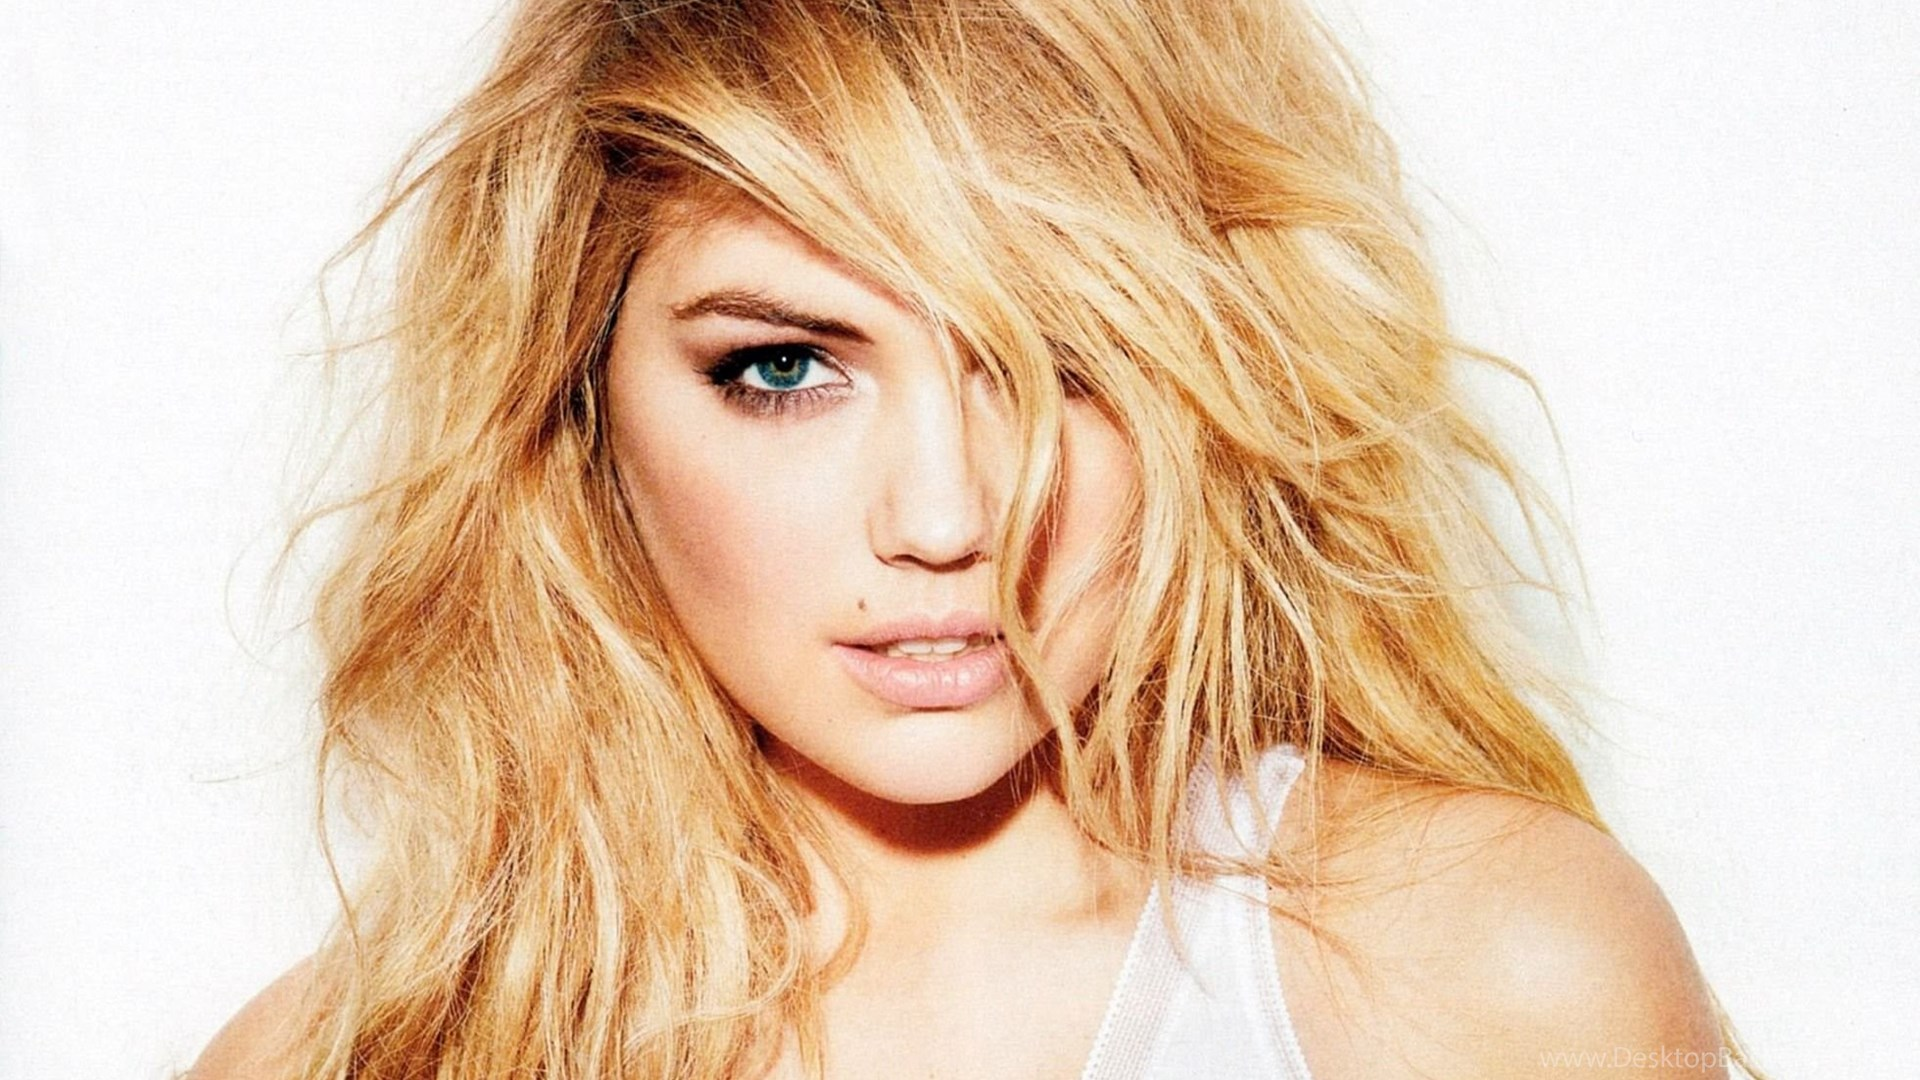 Kate Upton Hd Wallpapers Hd Wallpapers Of Kate Upton Page 1